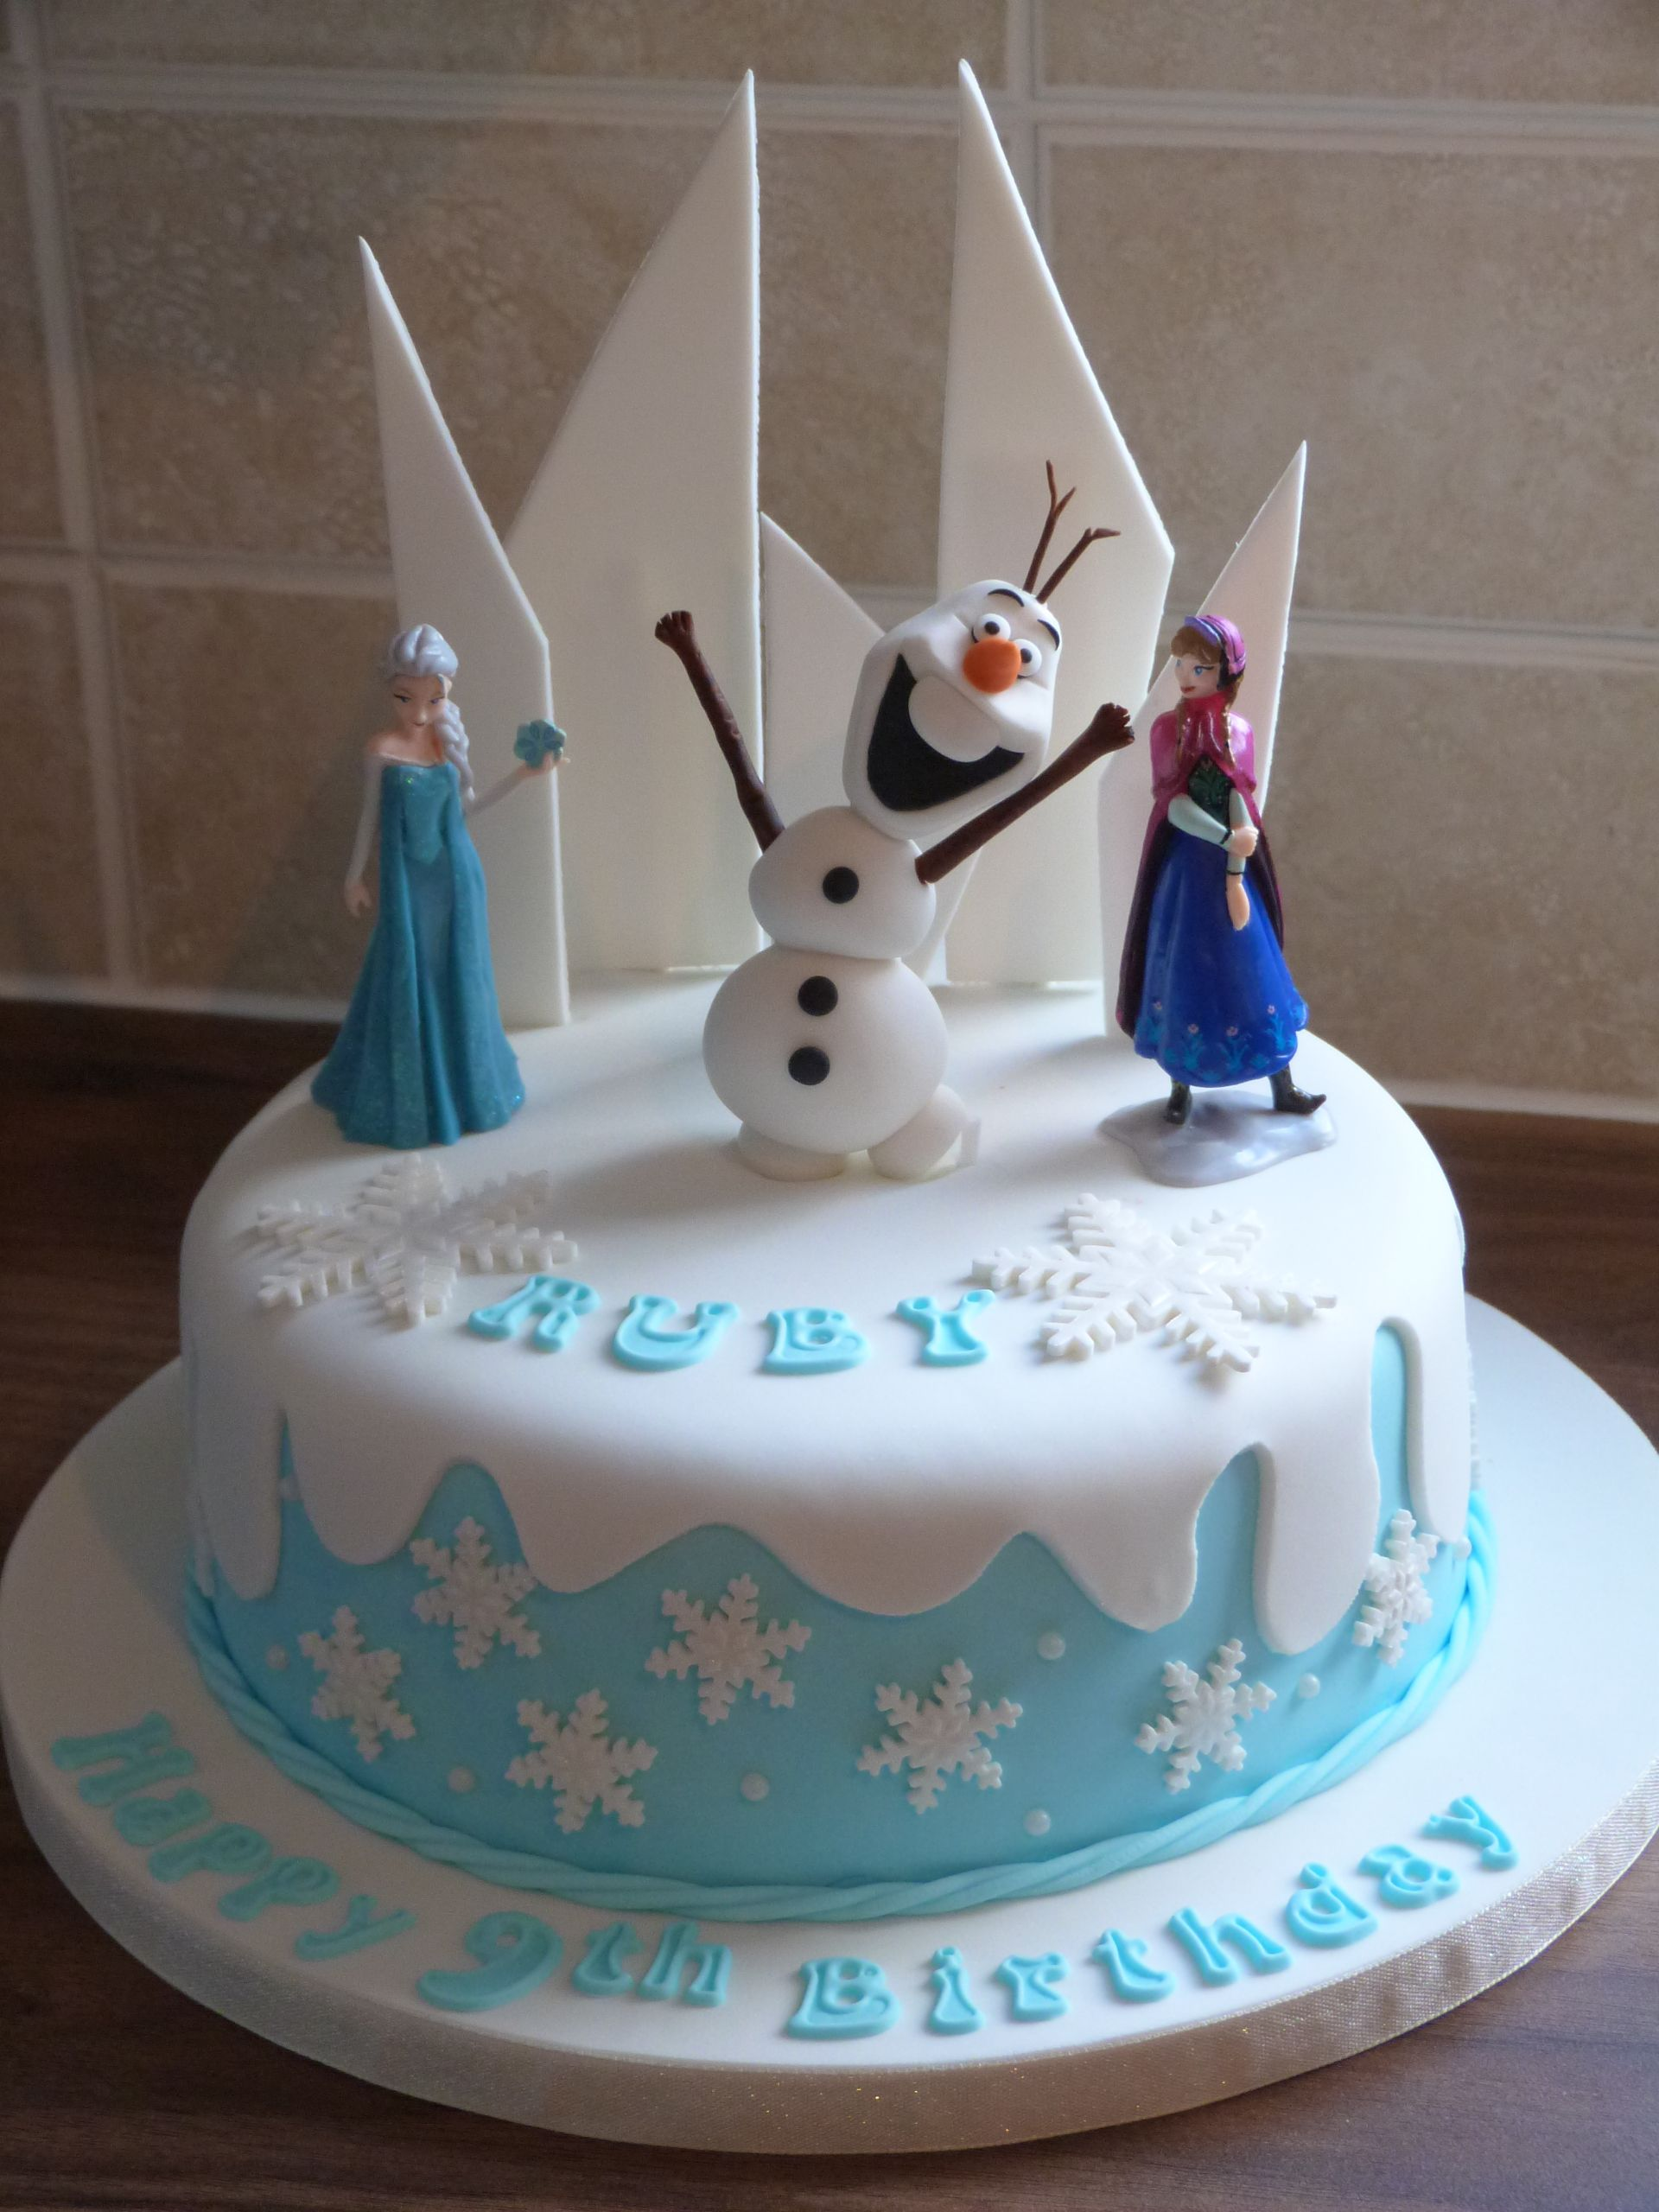 Cake Toppers Disney Frozen Kinder Figures